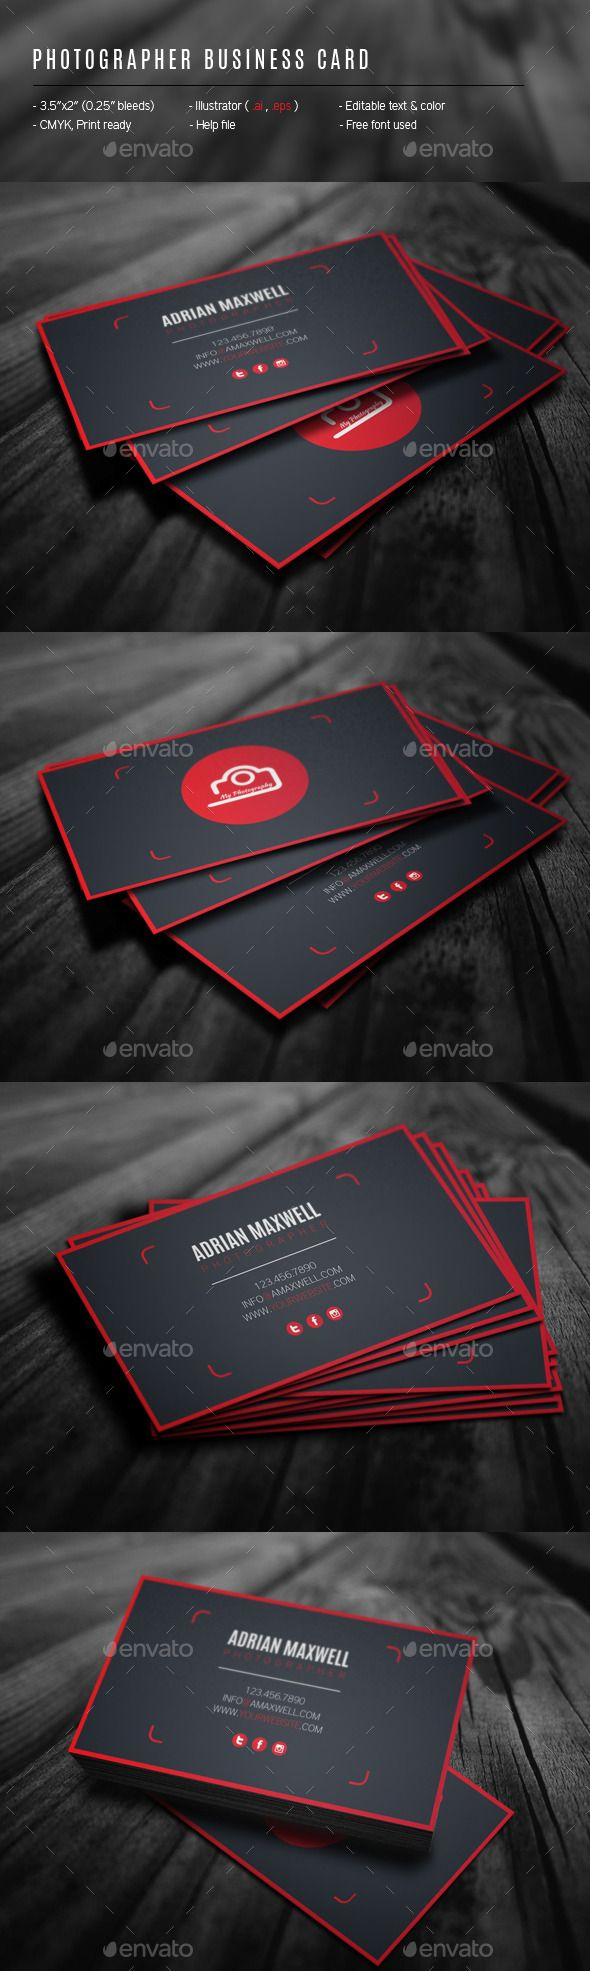 Best 25 photographer business cards ideas on pinterest photographer business card reheart Gallery